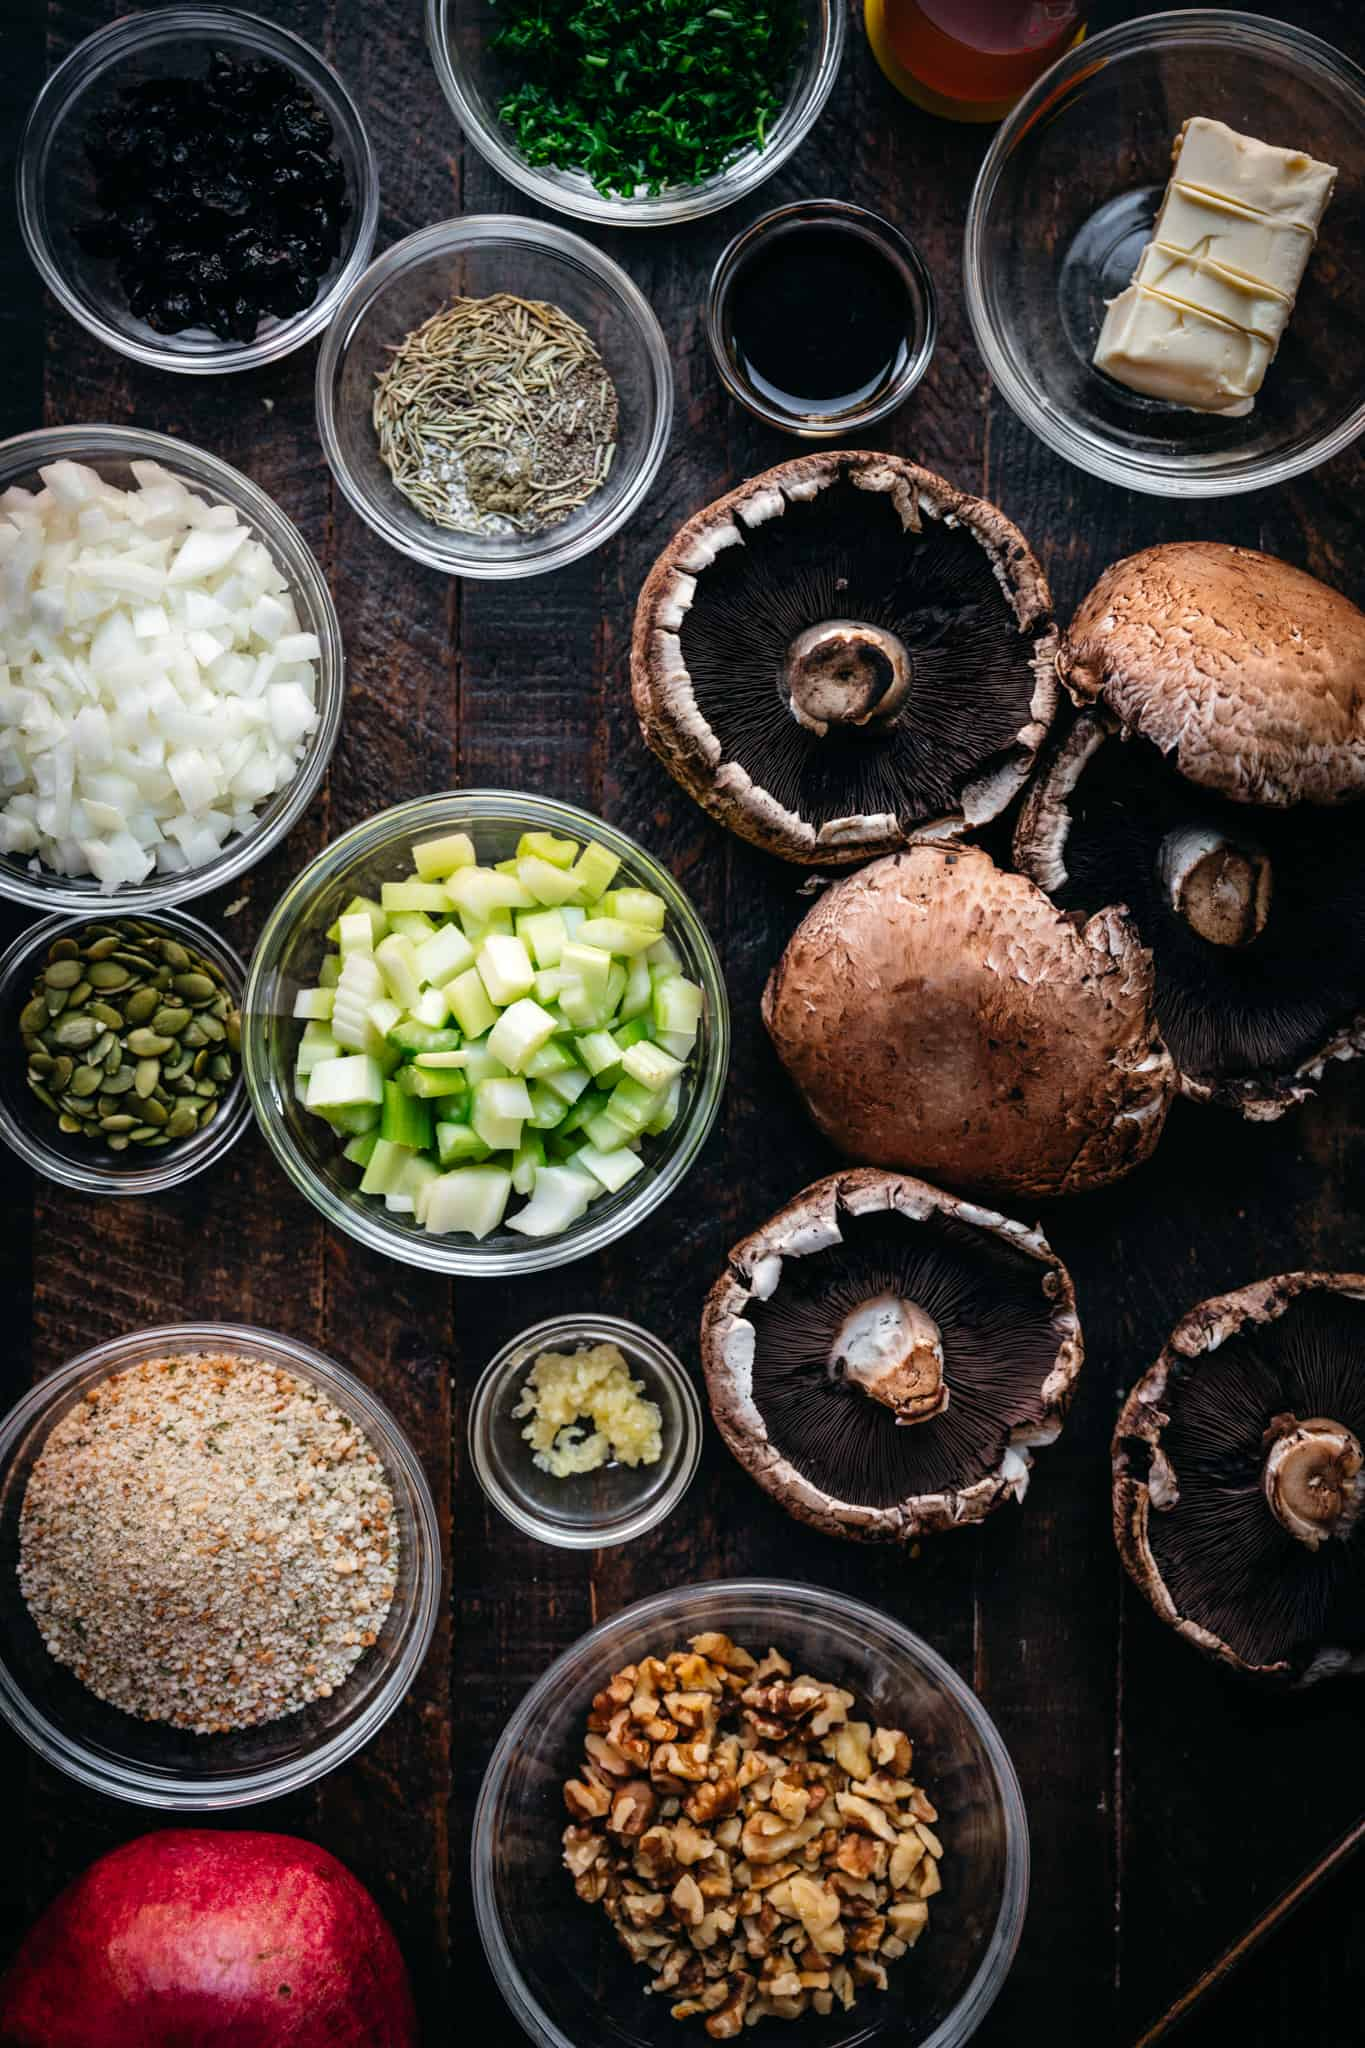 overhead view of ingredients for vegan stuffed portobello mushrooms on wood surface